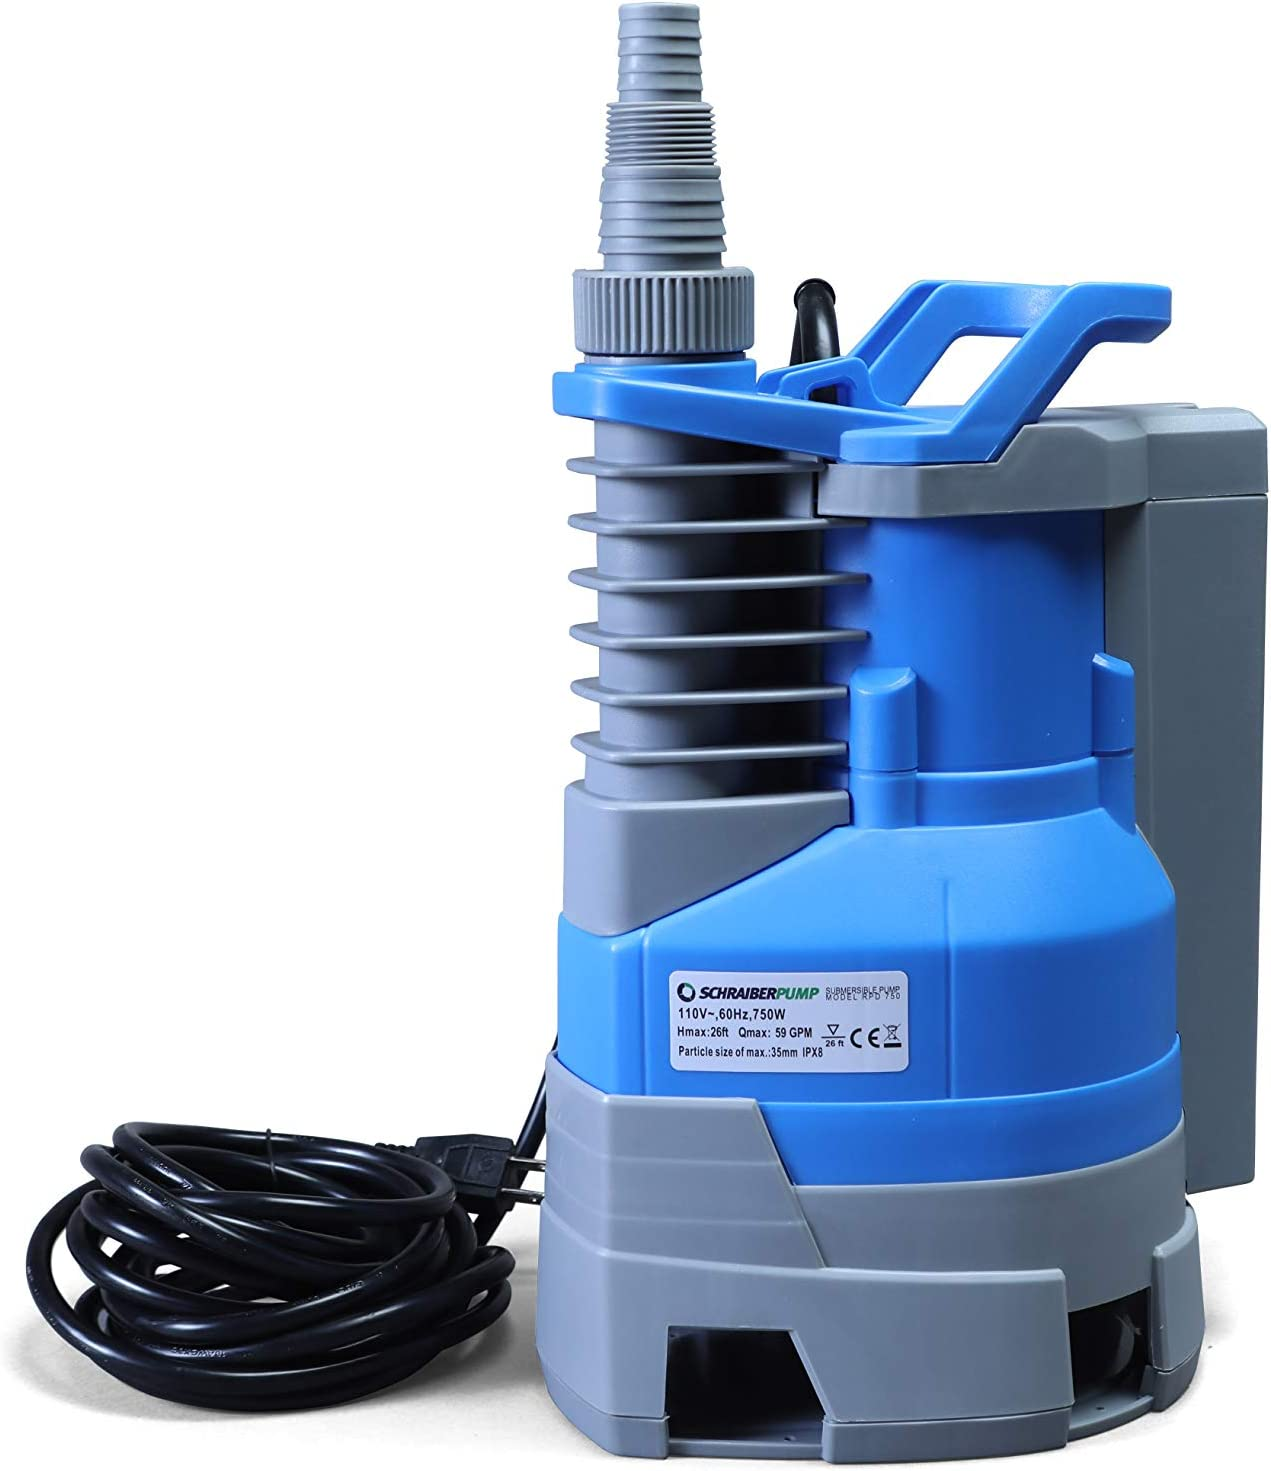 Submersible Clean/Dirty Water Sump Pump 1/2hp with built in automatic ON/OFF (with adjustable start heights) 2400GPH, 16'Head, Thermal Protector, Copper Winding - Schraiberpump